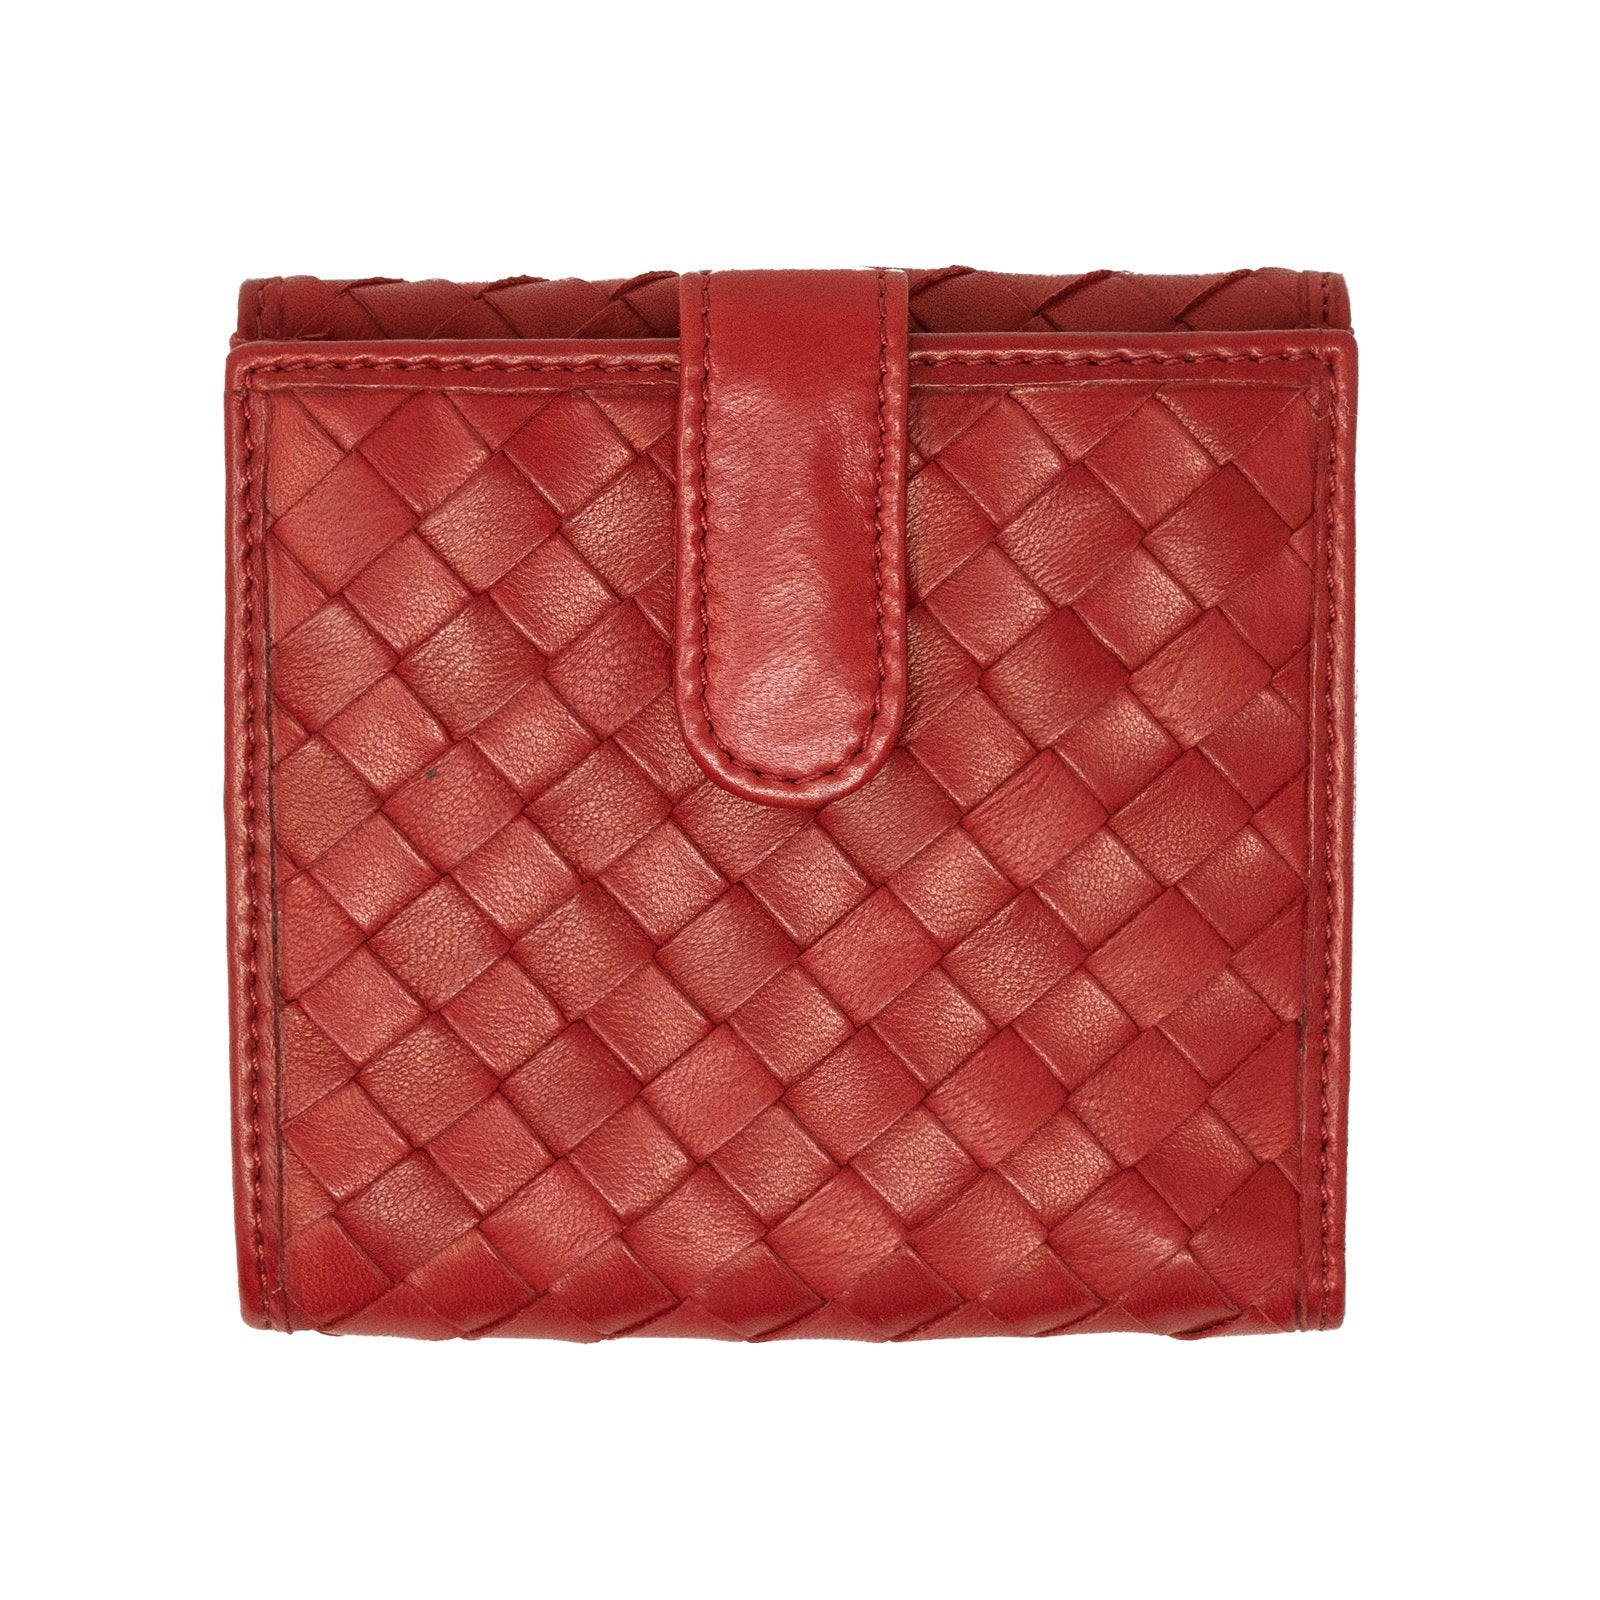 Women Intrecciato Leather Wallet in Red - Jennifer Tattanelli